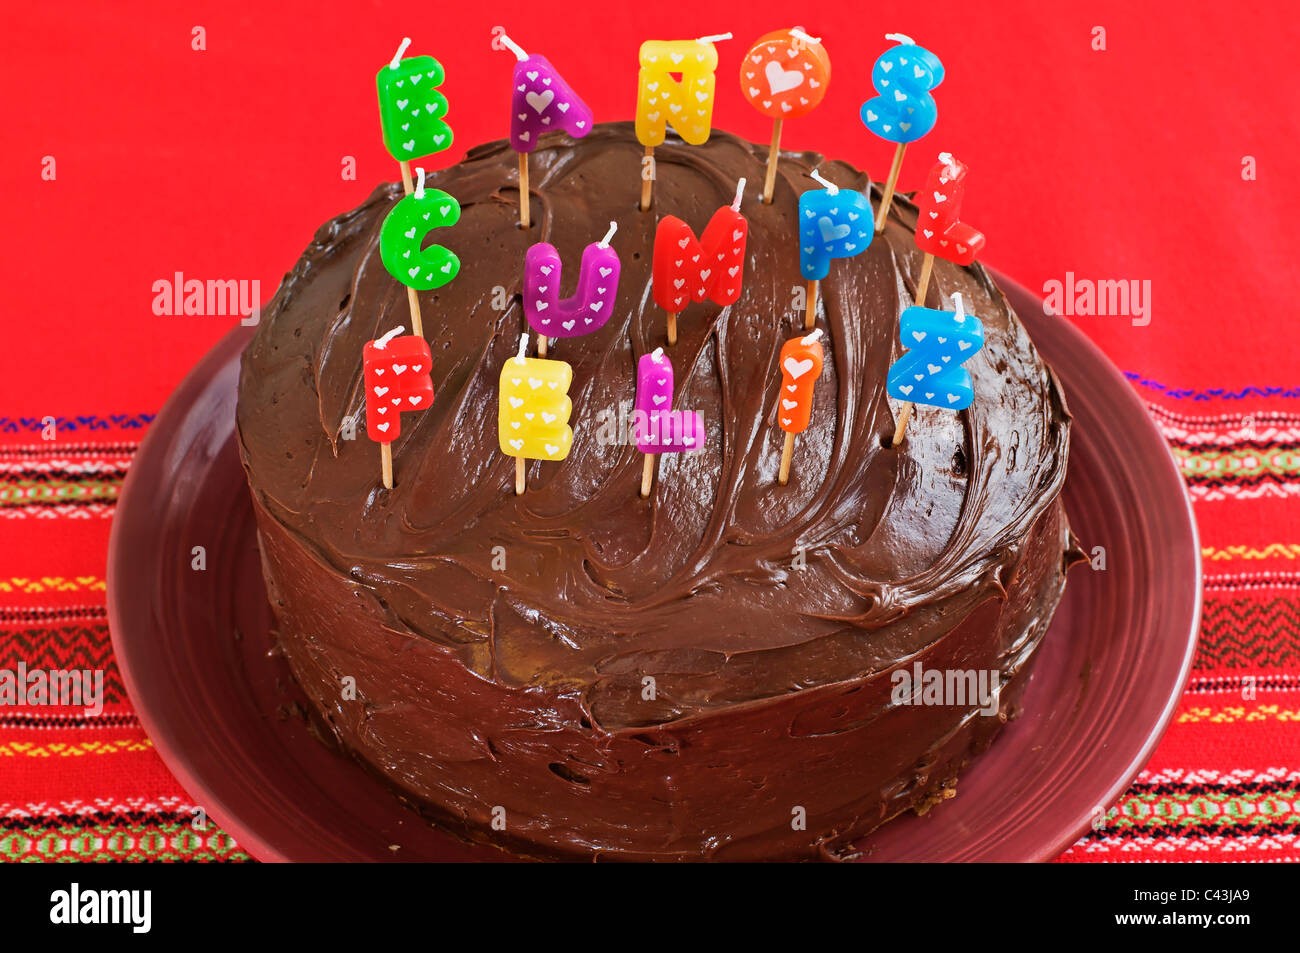 Layered Birthday Cake With Chocolate Frosting And Decorated With